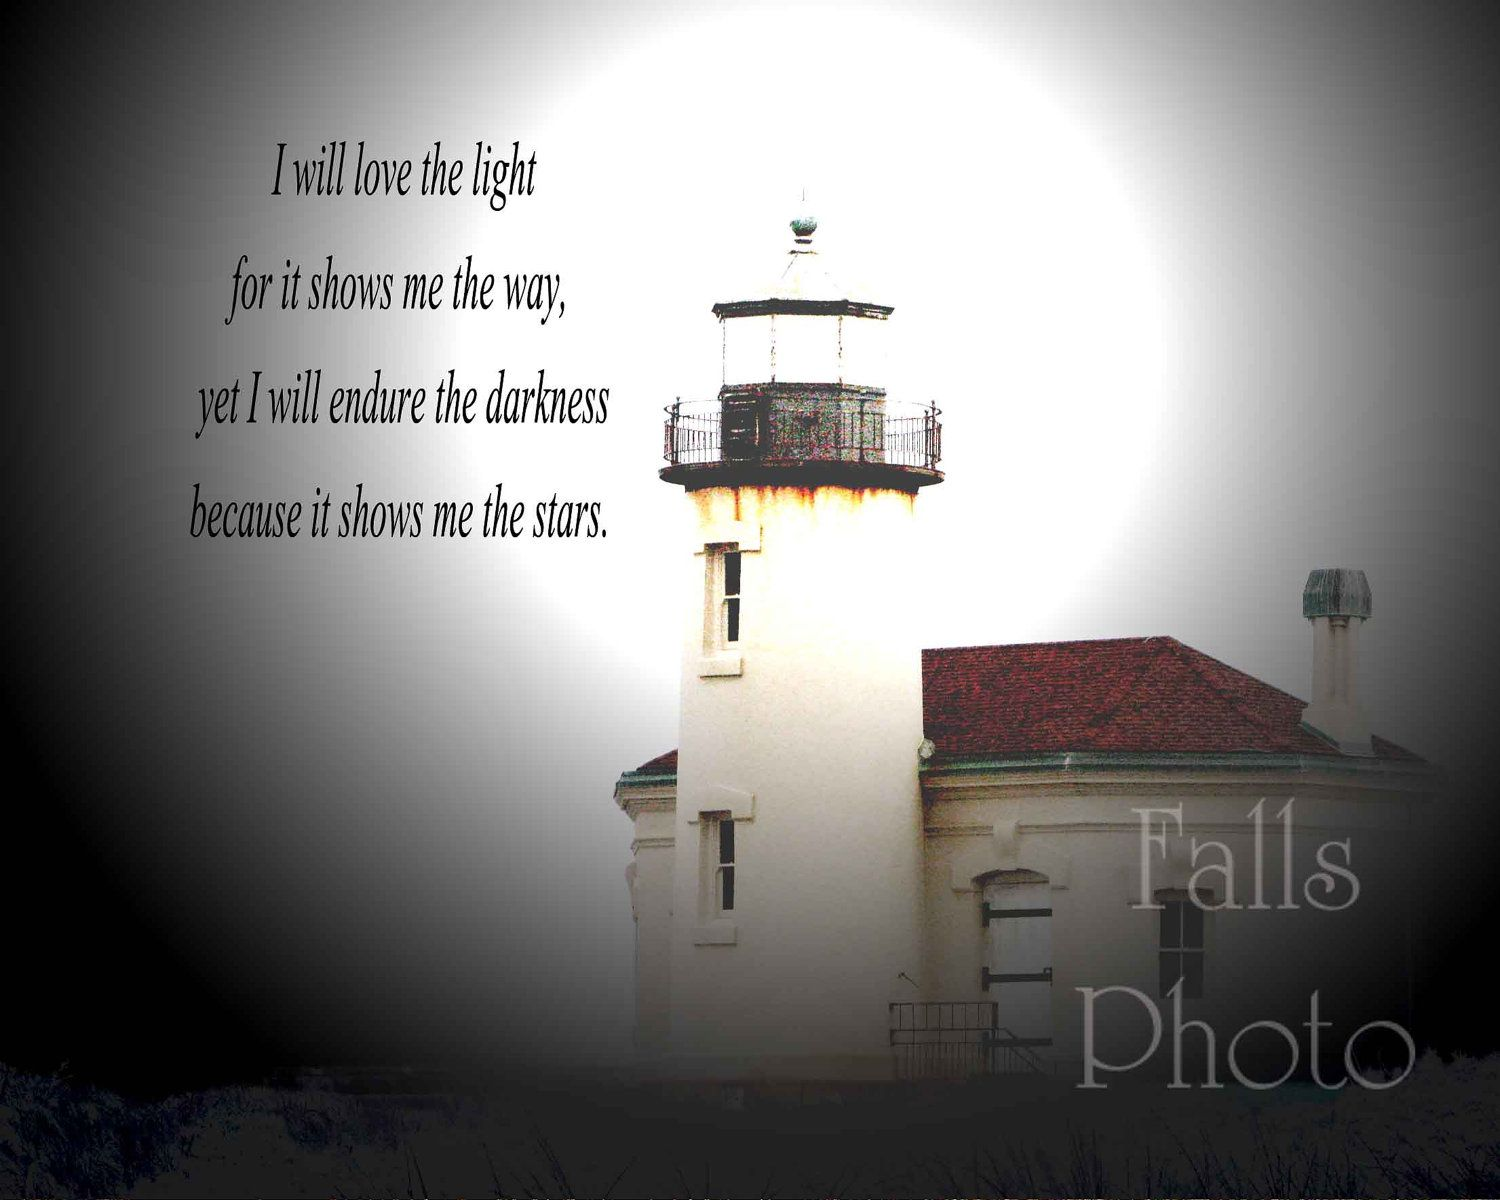 Lighthouse Quotes | Lighthouse Print With Quote 8x10 15 00 Via Etsy Lighthouse